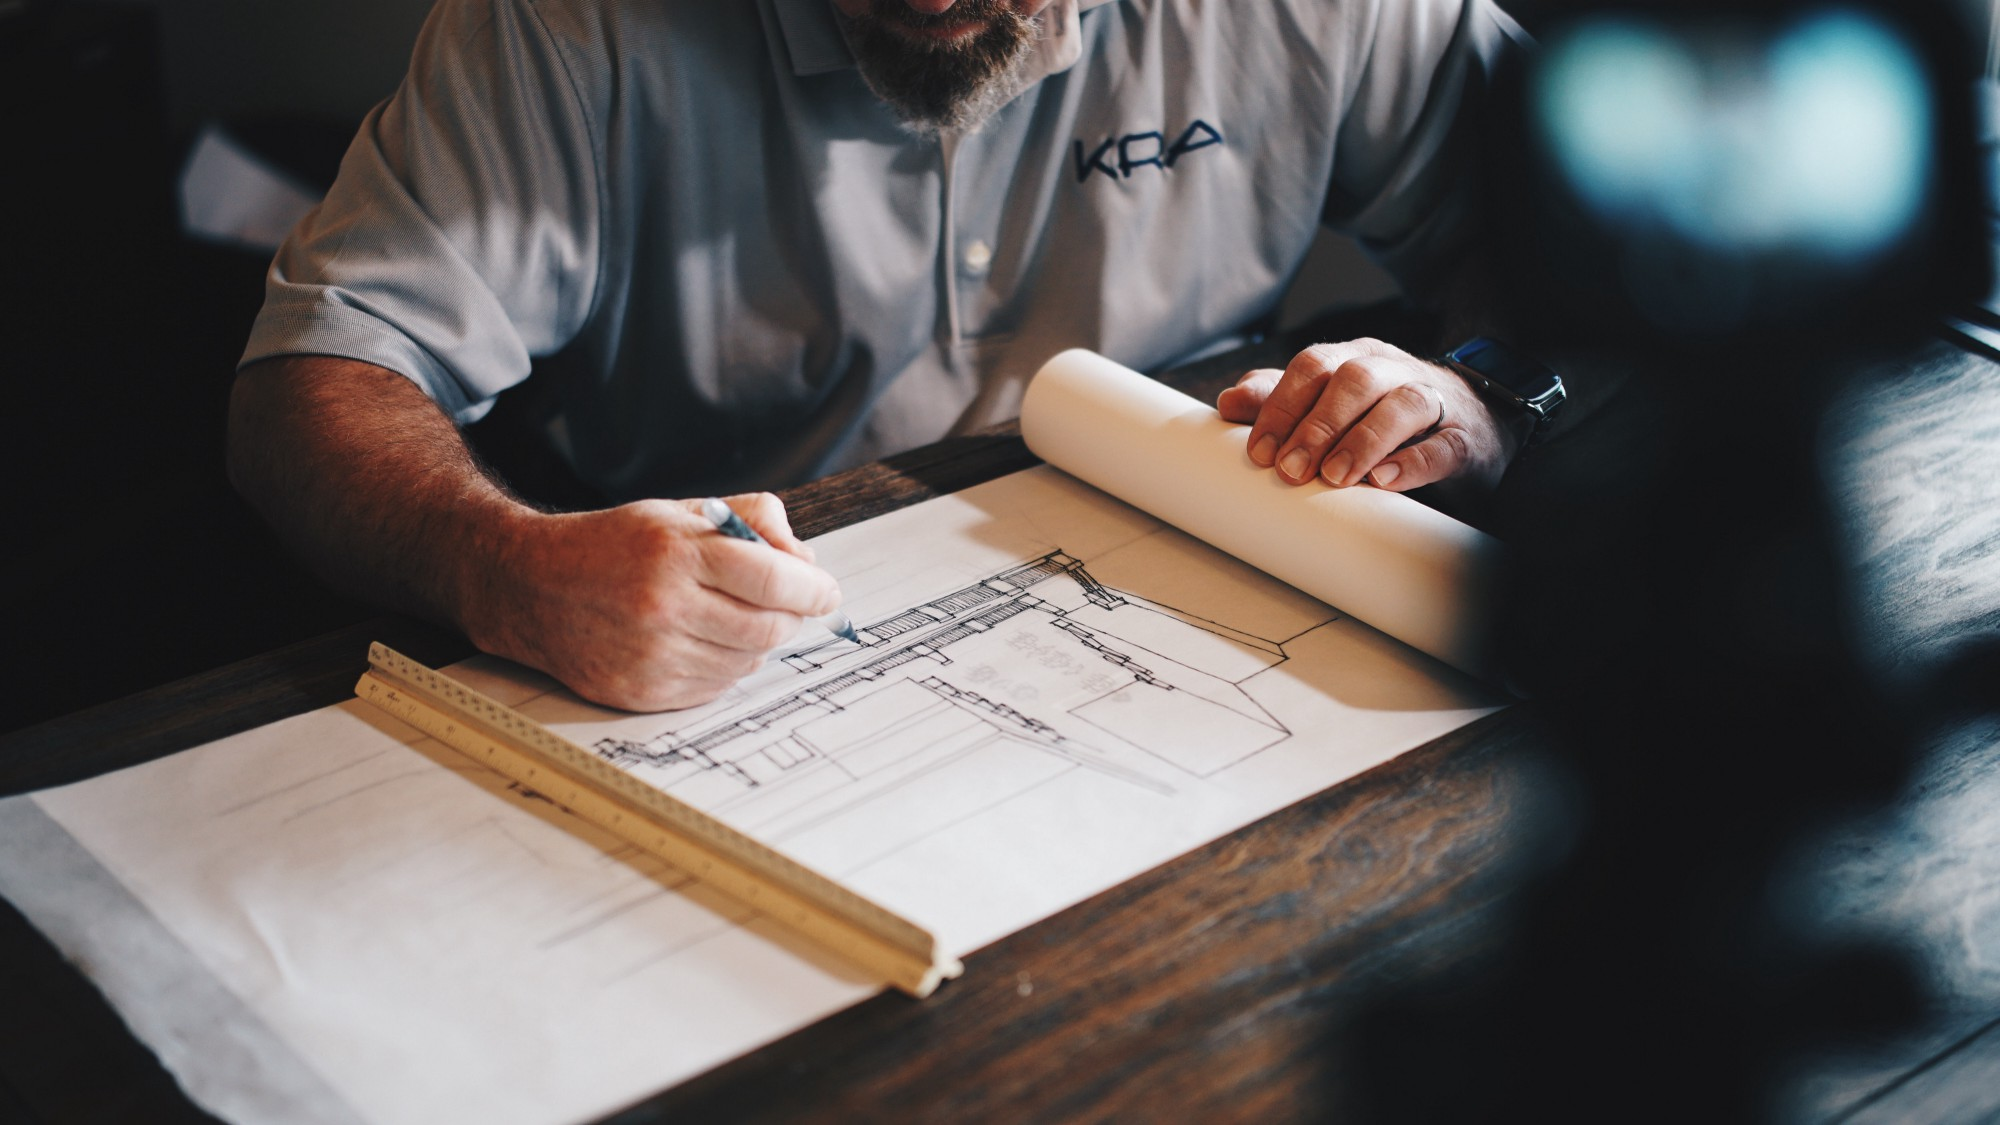 An architect at work sits at a wooden desk drawing a sketch.